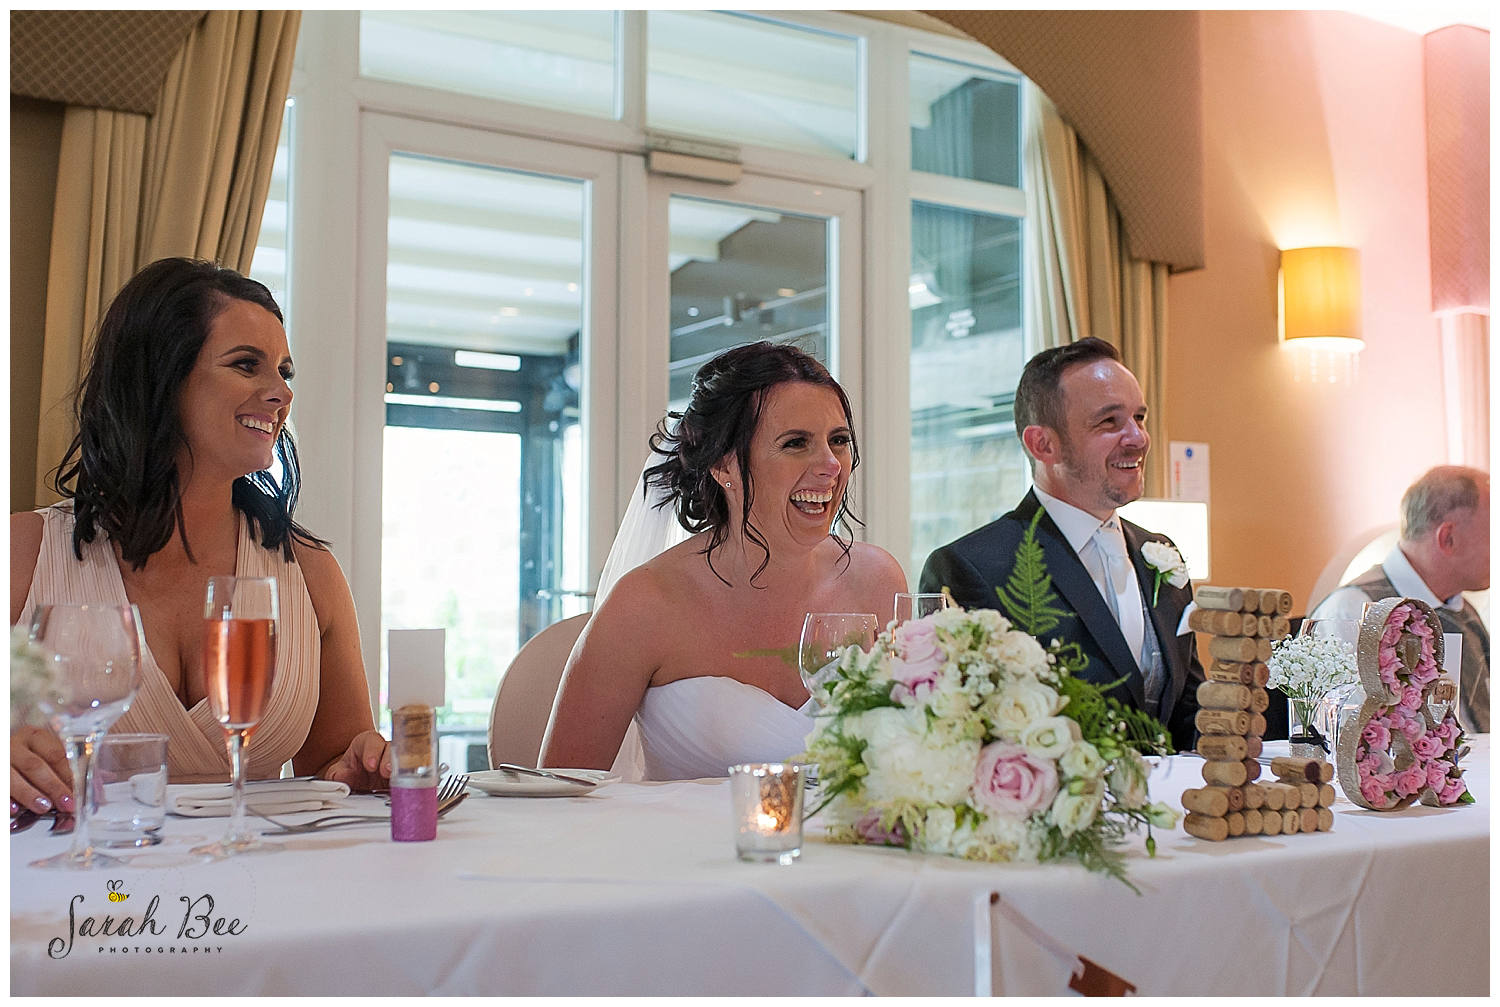 documentory wedding photography with sarah bee photography, wedding photography, wedding photographer at 315 bar and restaurant huddersfield, nateral wedding photography_0393.jpg